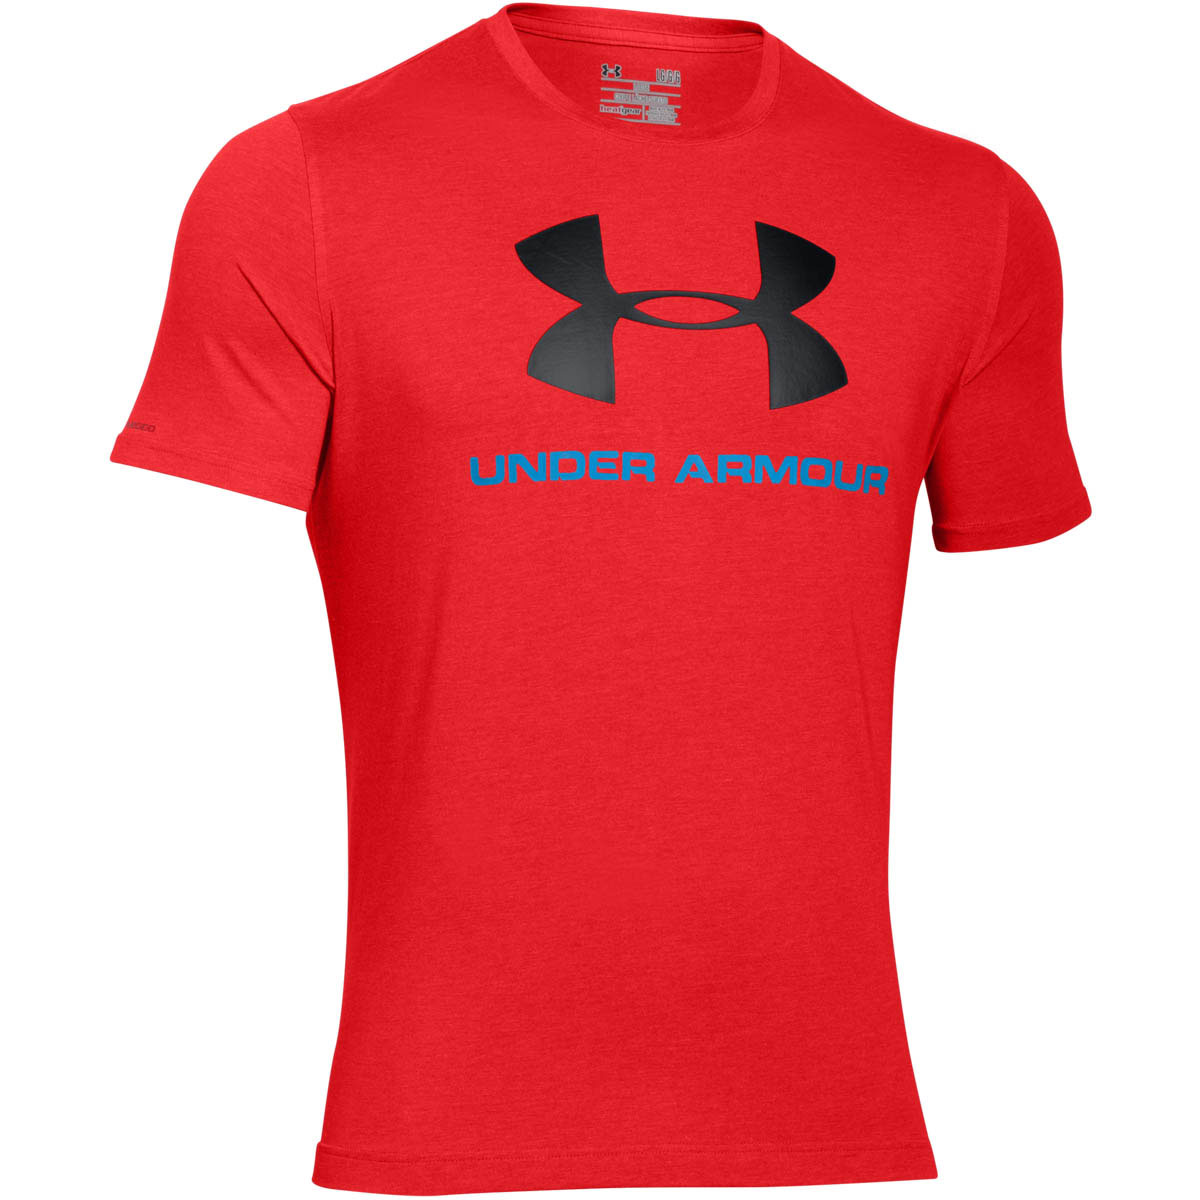 Under armour 2017 mens charged cotton sportstyle logo t for Under armour company shirts